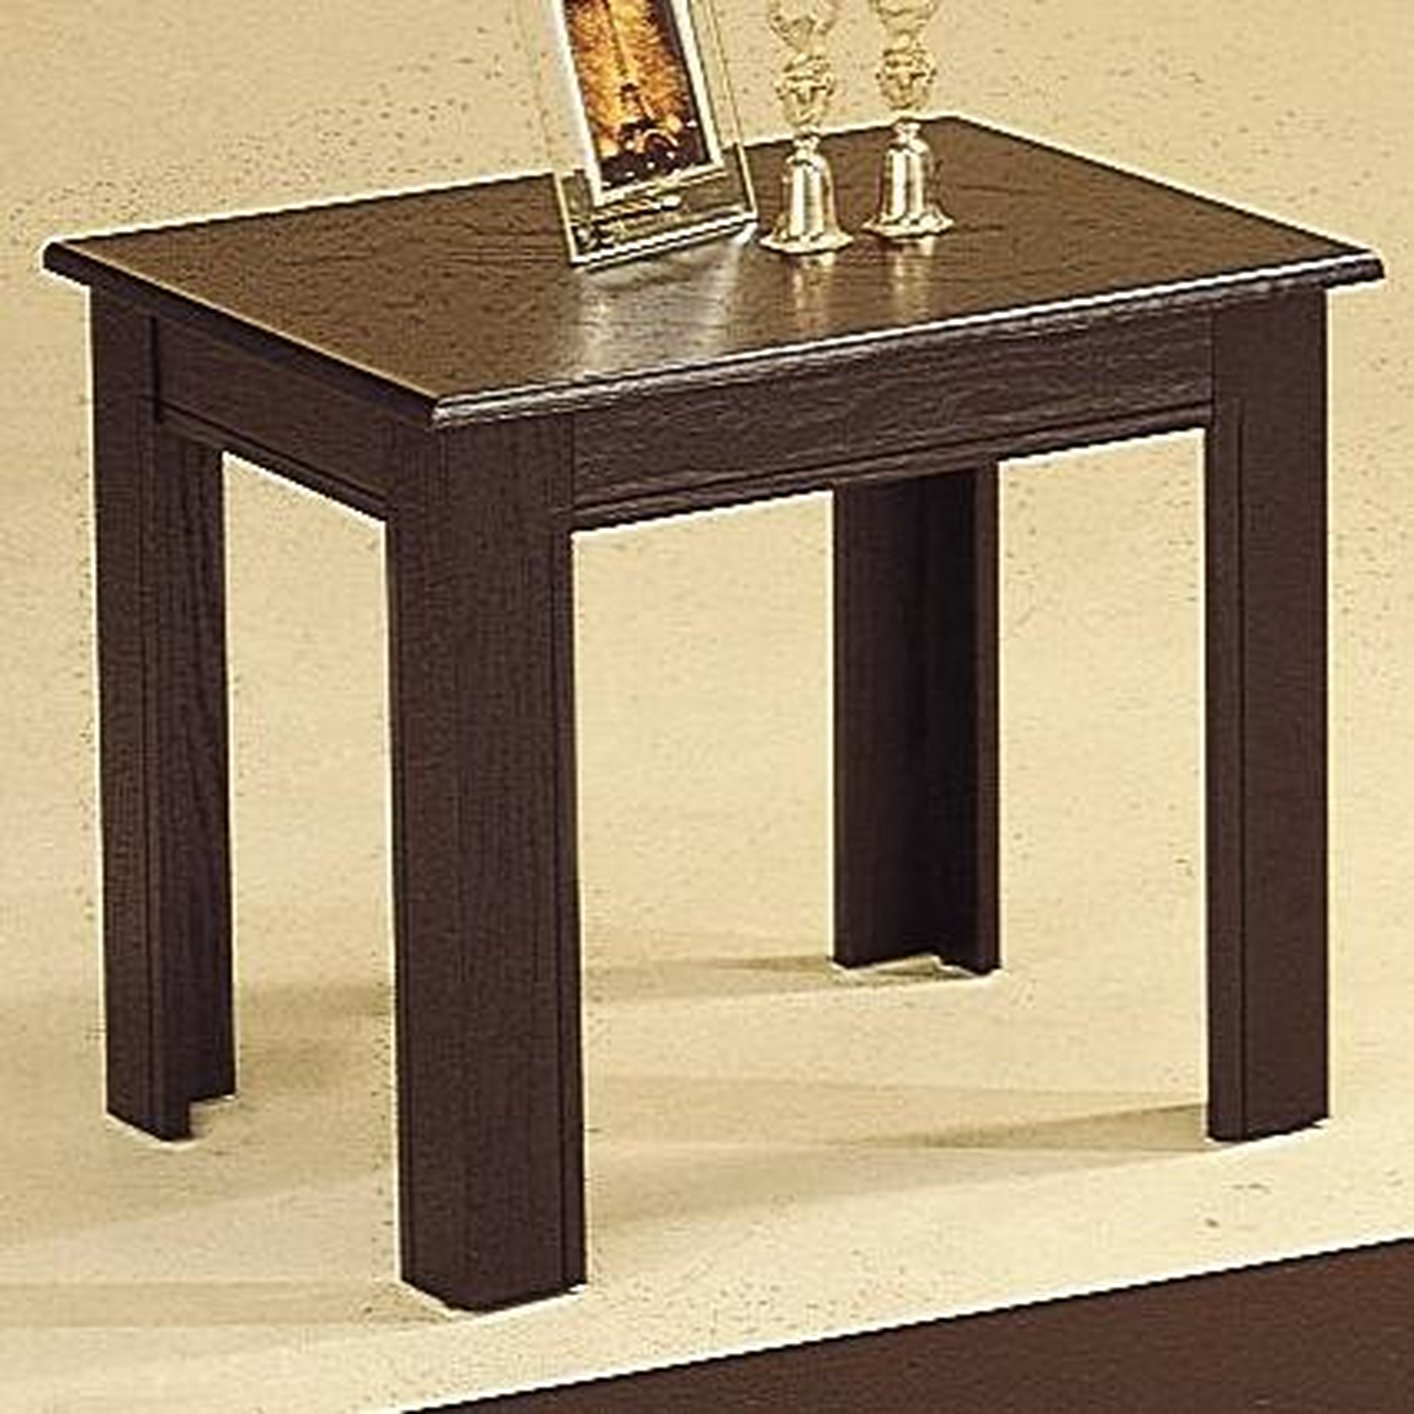 acosta black wood coffee table set  stealasofa furniture outlet  - acosta black wood coffee table set acosta black wood coffee table set